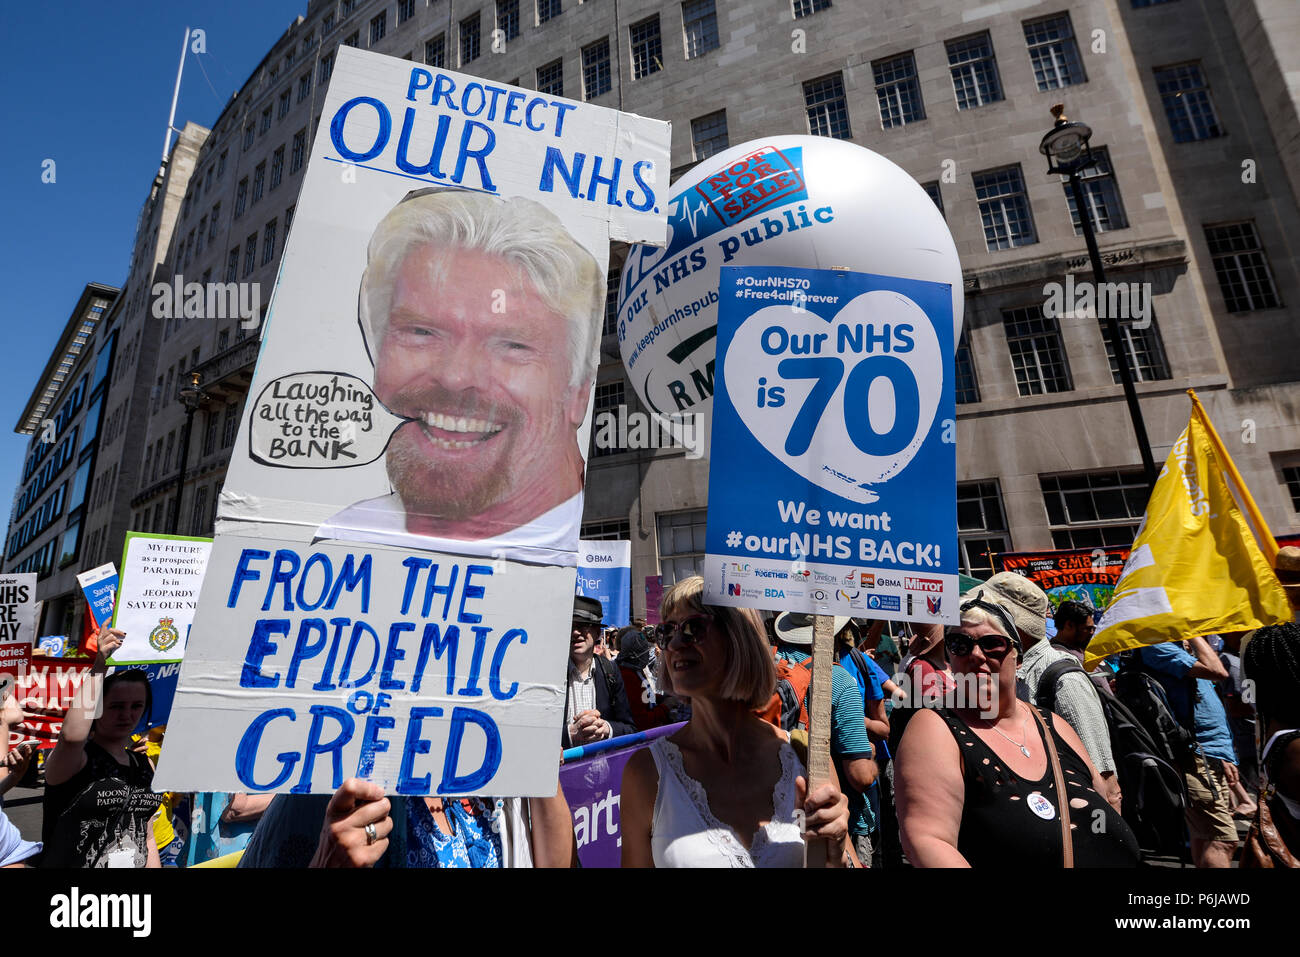 70th anniversary of the National Health Service, also being used to demonstrate against austerity, funding cuts and moves to sell departments to the private sector - Stock Image